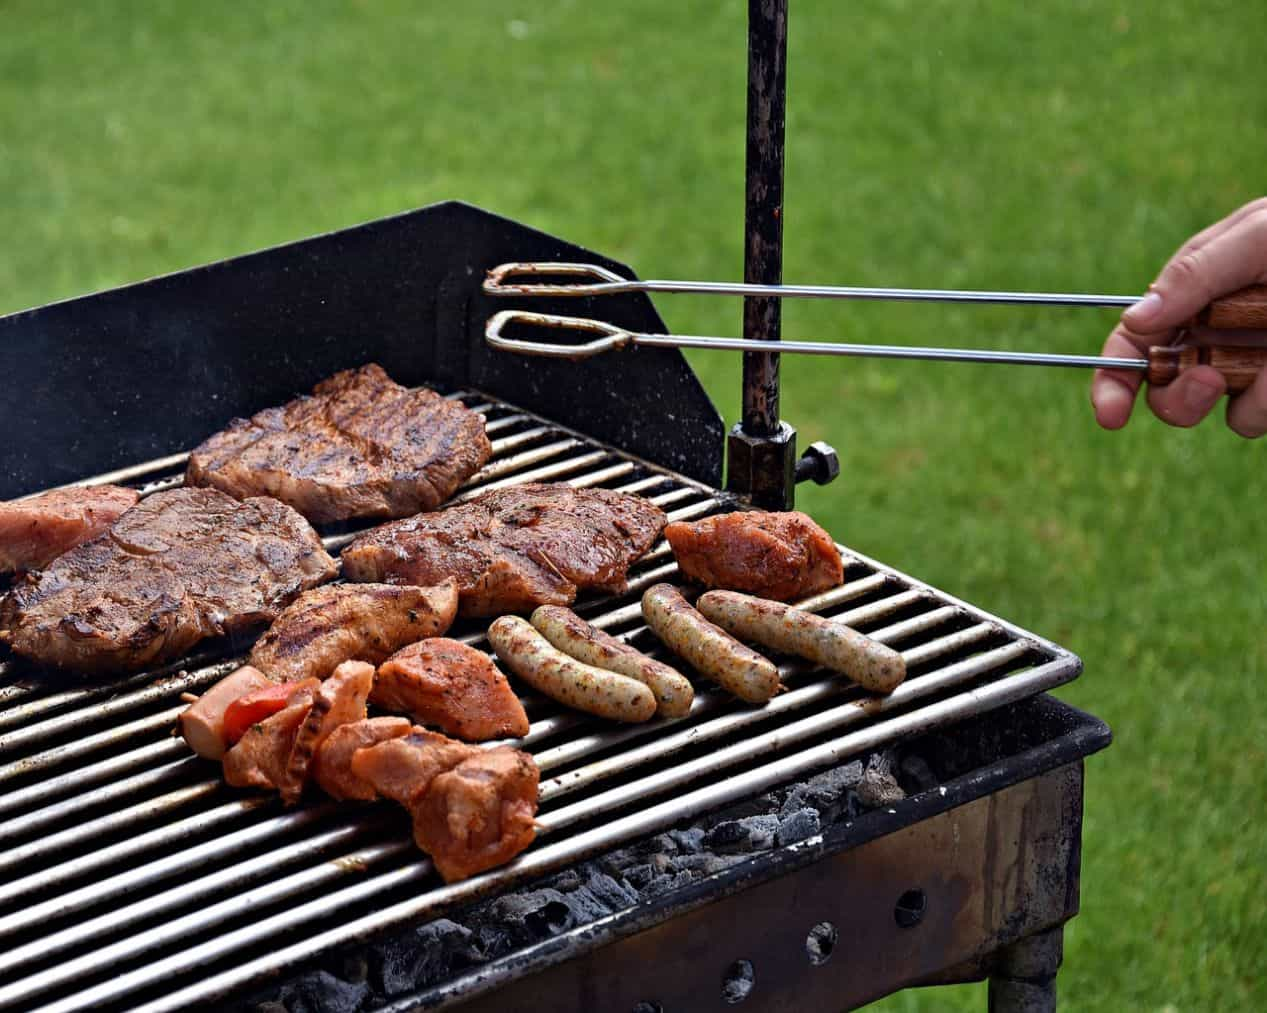 grill-checklist-bbq-party-9-long-handled-tongs